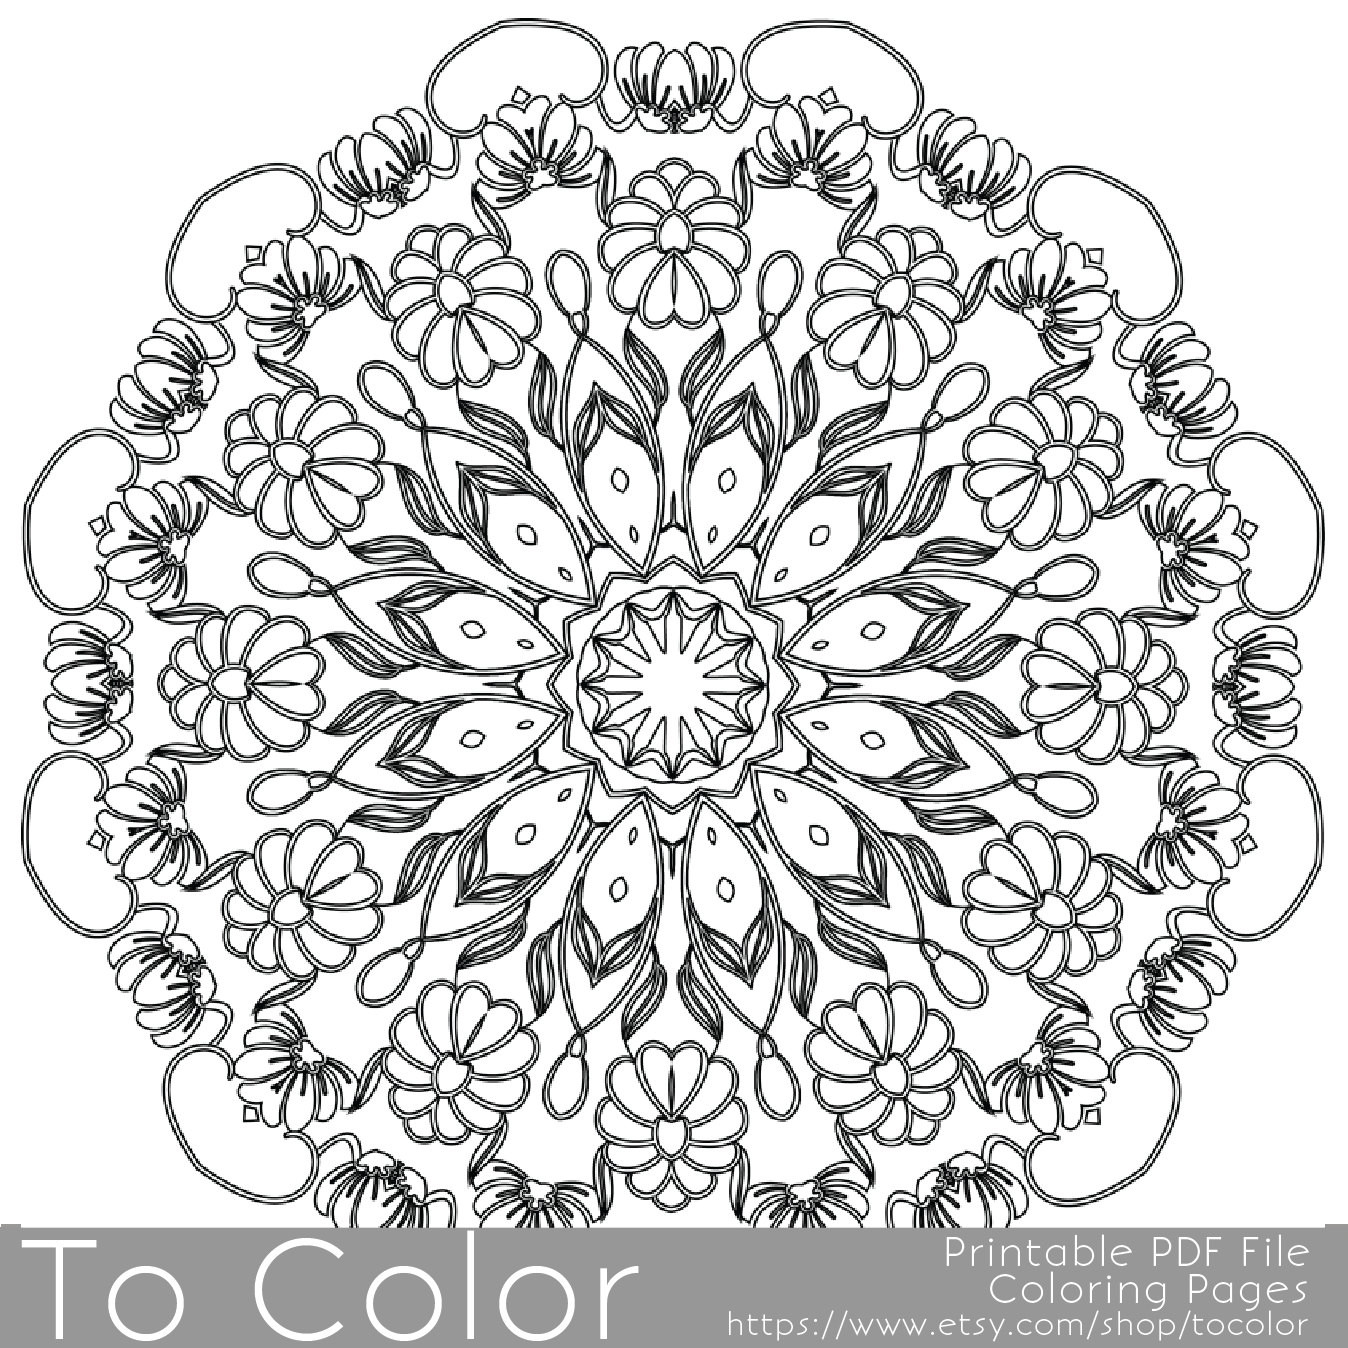 Pens For Adult Coloring Books  Intricate Printable Coloring Pages for Adults Gel Pens by